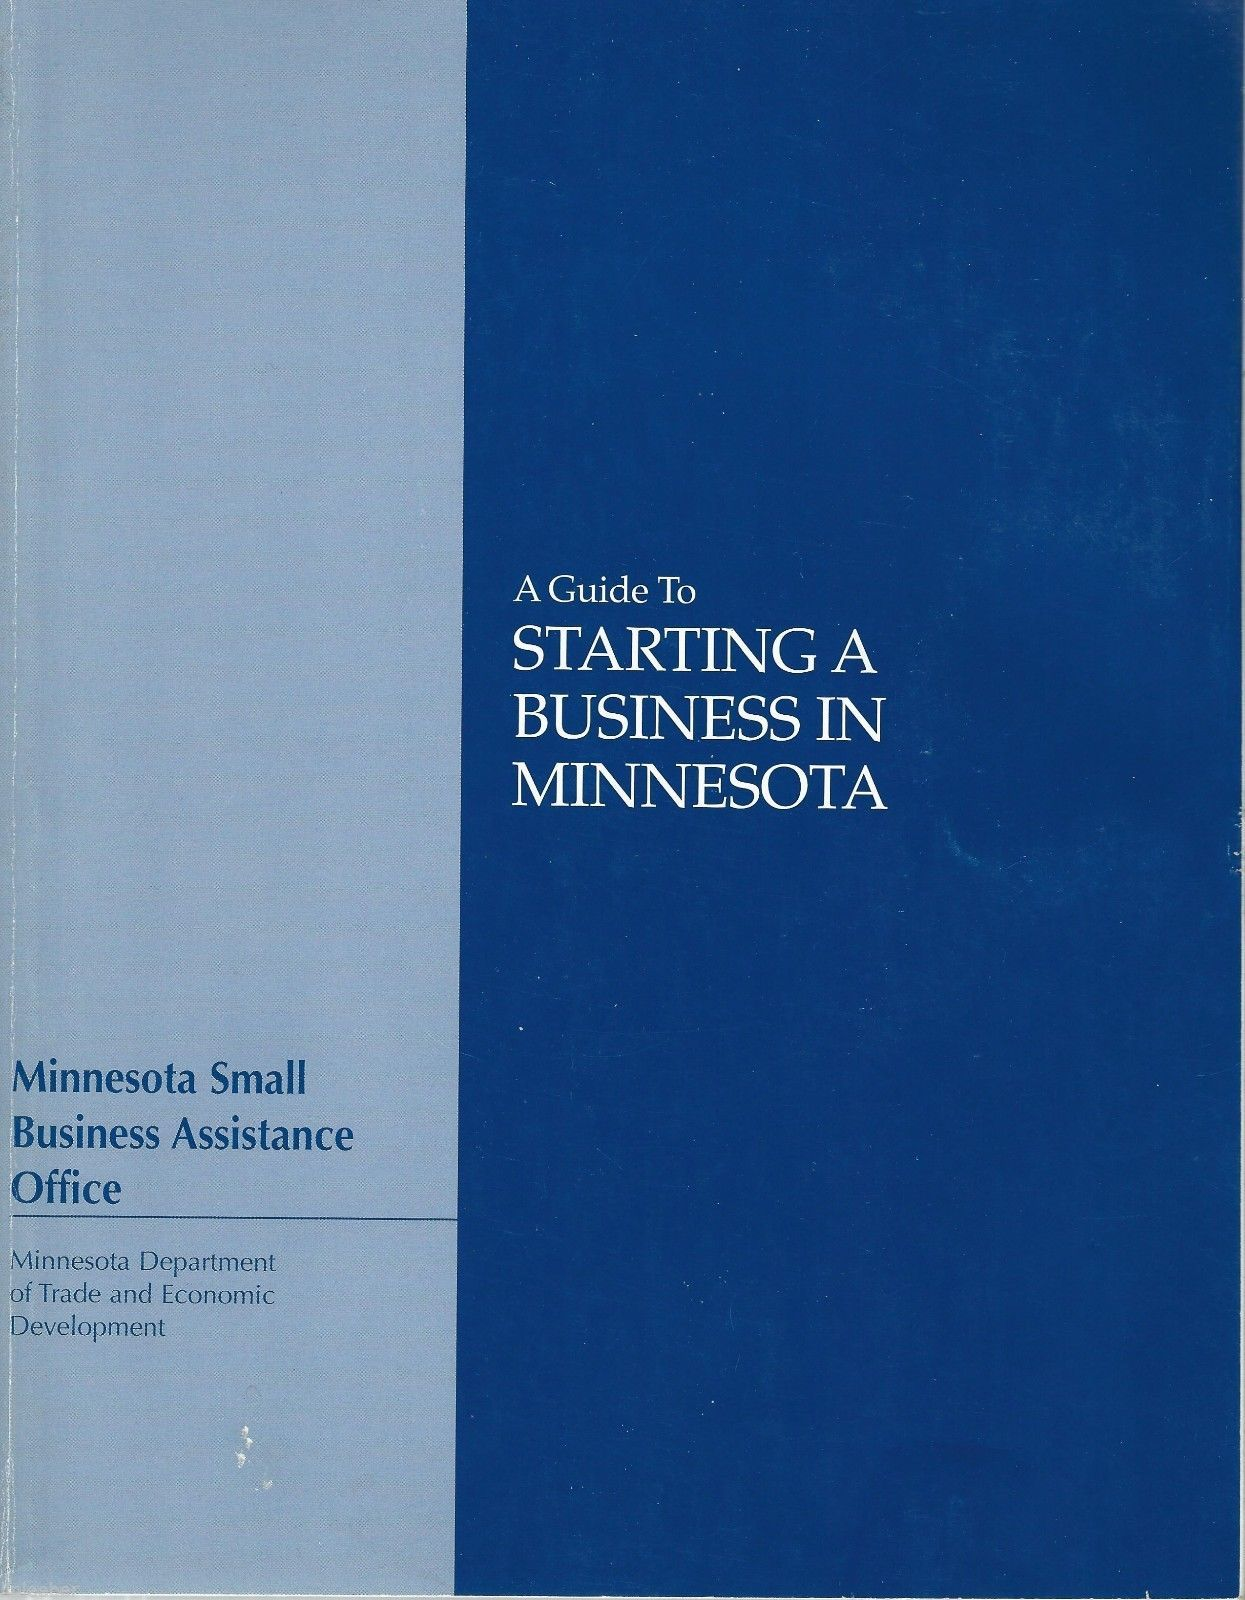 A Guide to Starting A Business in Minnesota;MN Small Business Assistance Office